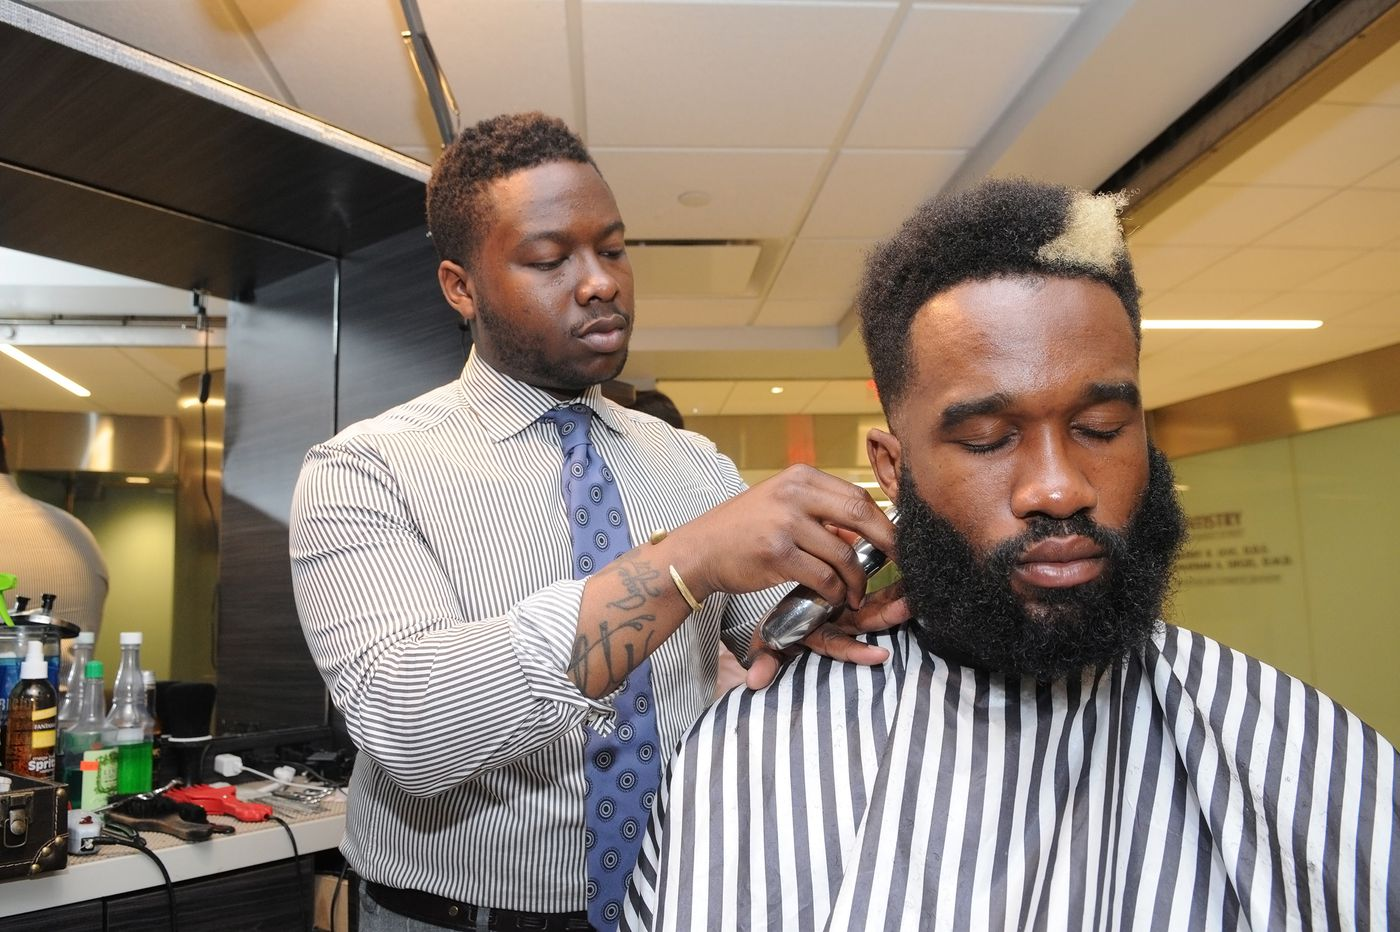 A mobile barbershop experience that elevates the culture of the gentleman | Elizabeth Wellington